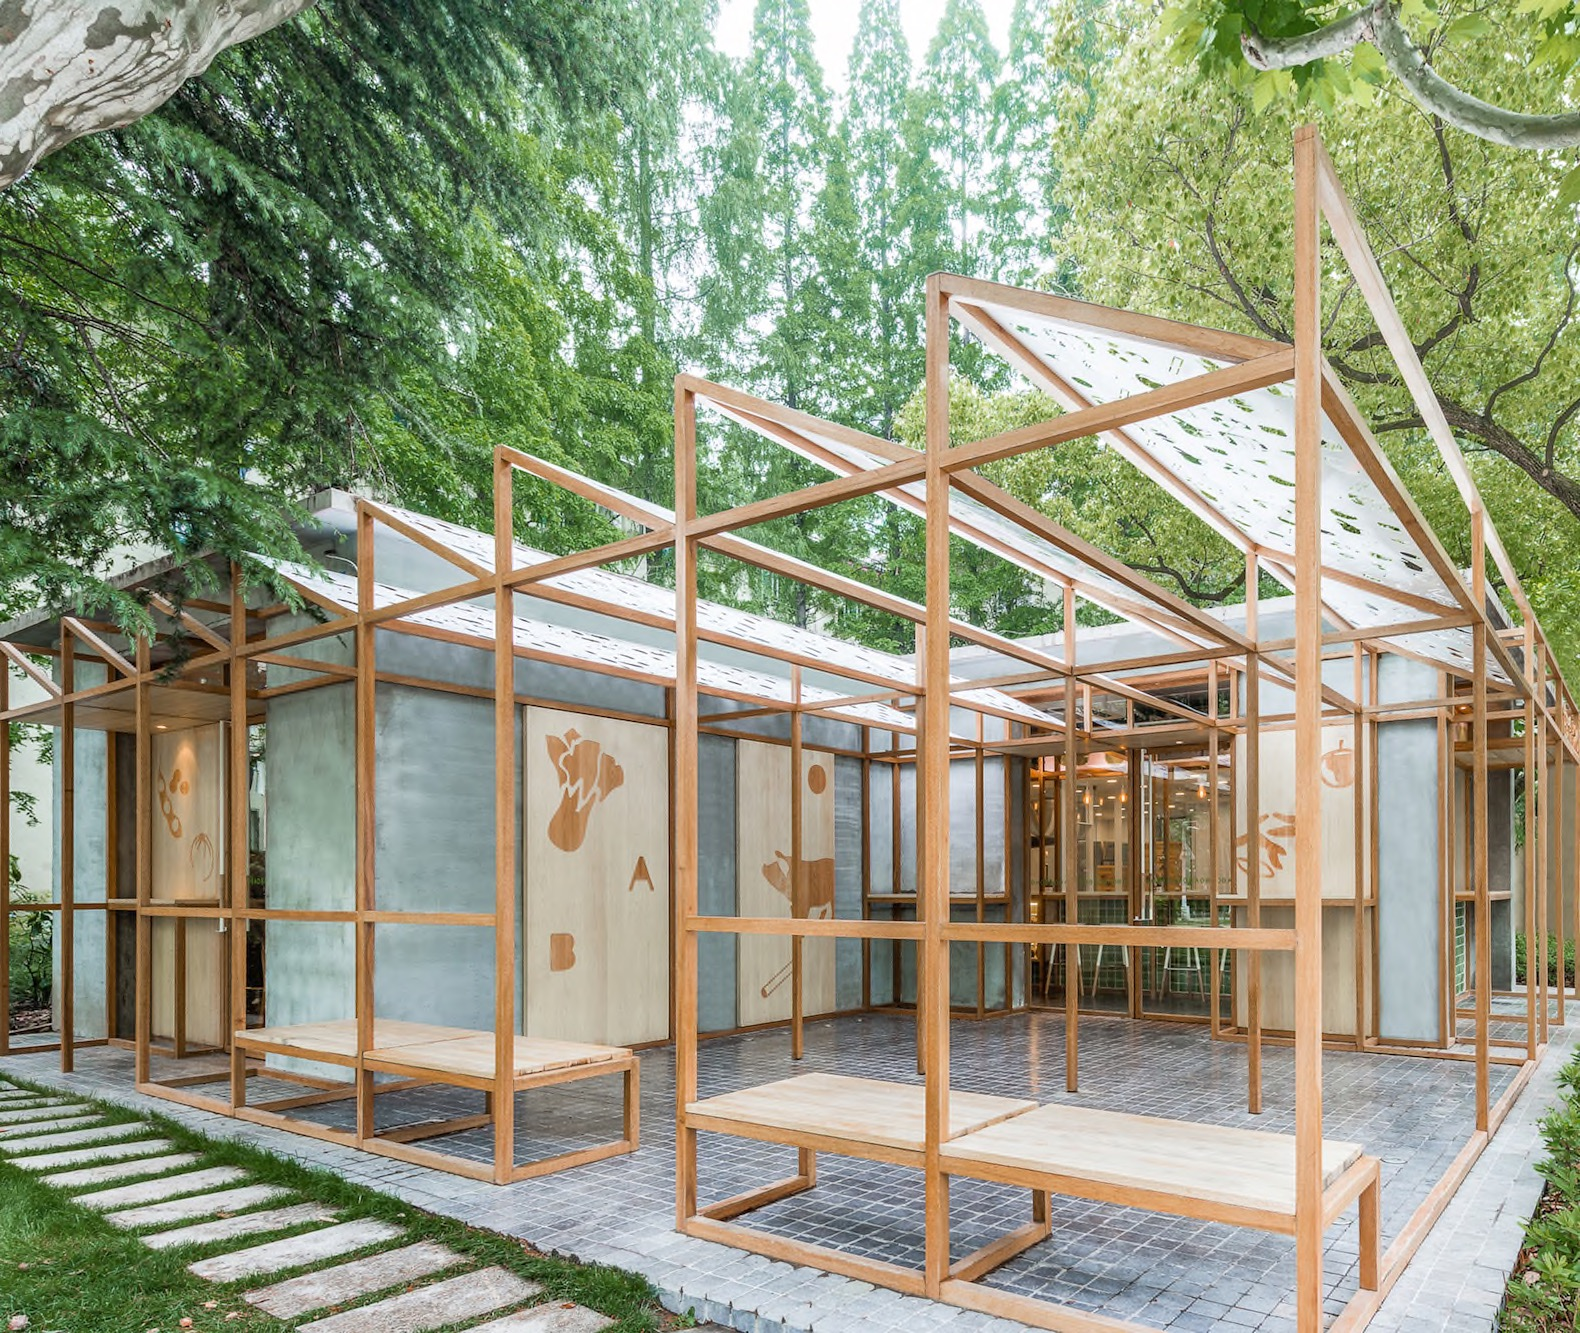 stylish shanghai eatery promotes the goodness of their food with a greenhouse like design